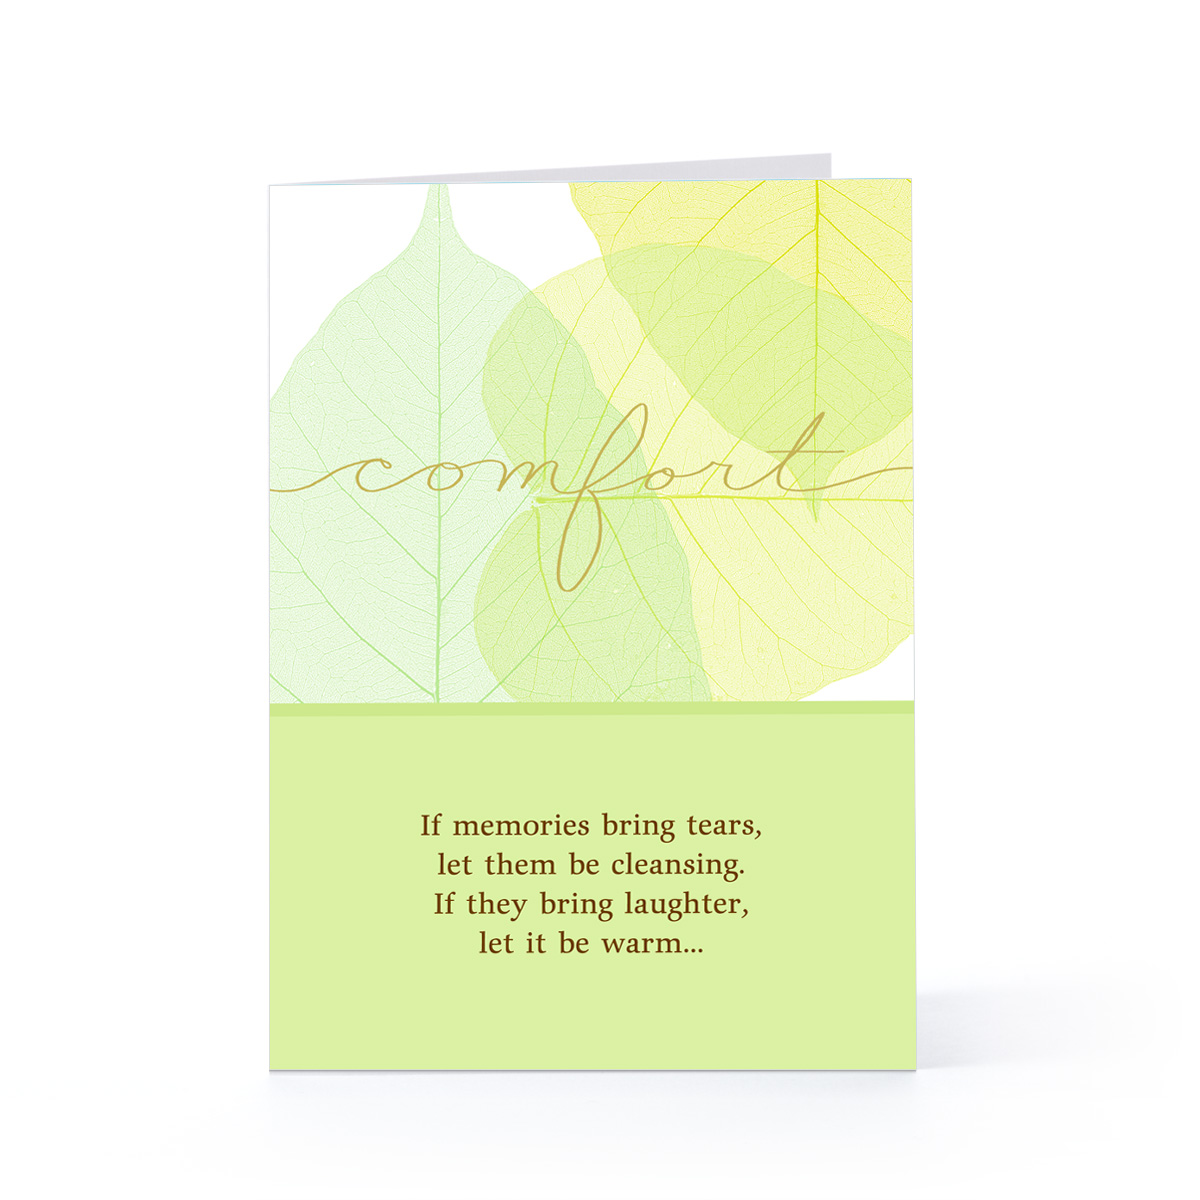 4 Images of Hallmark Free Sympathy Printable Cards